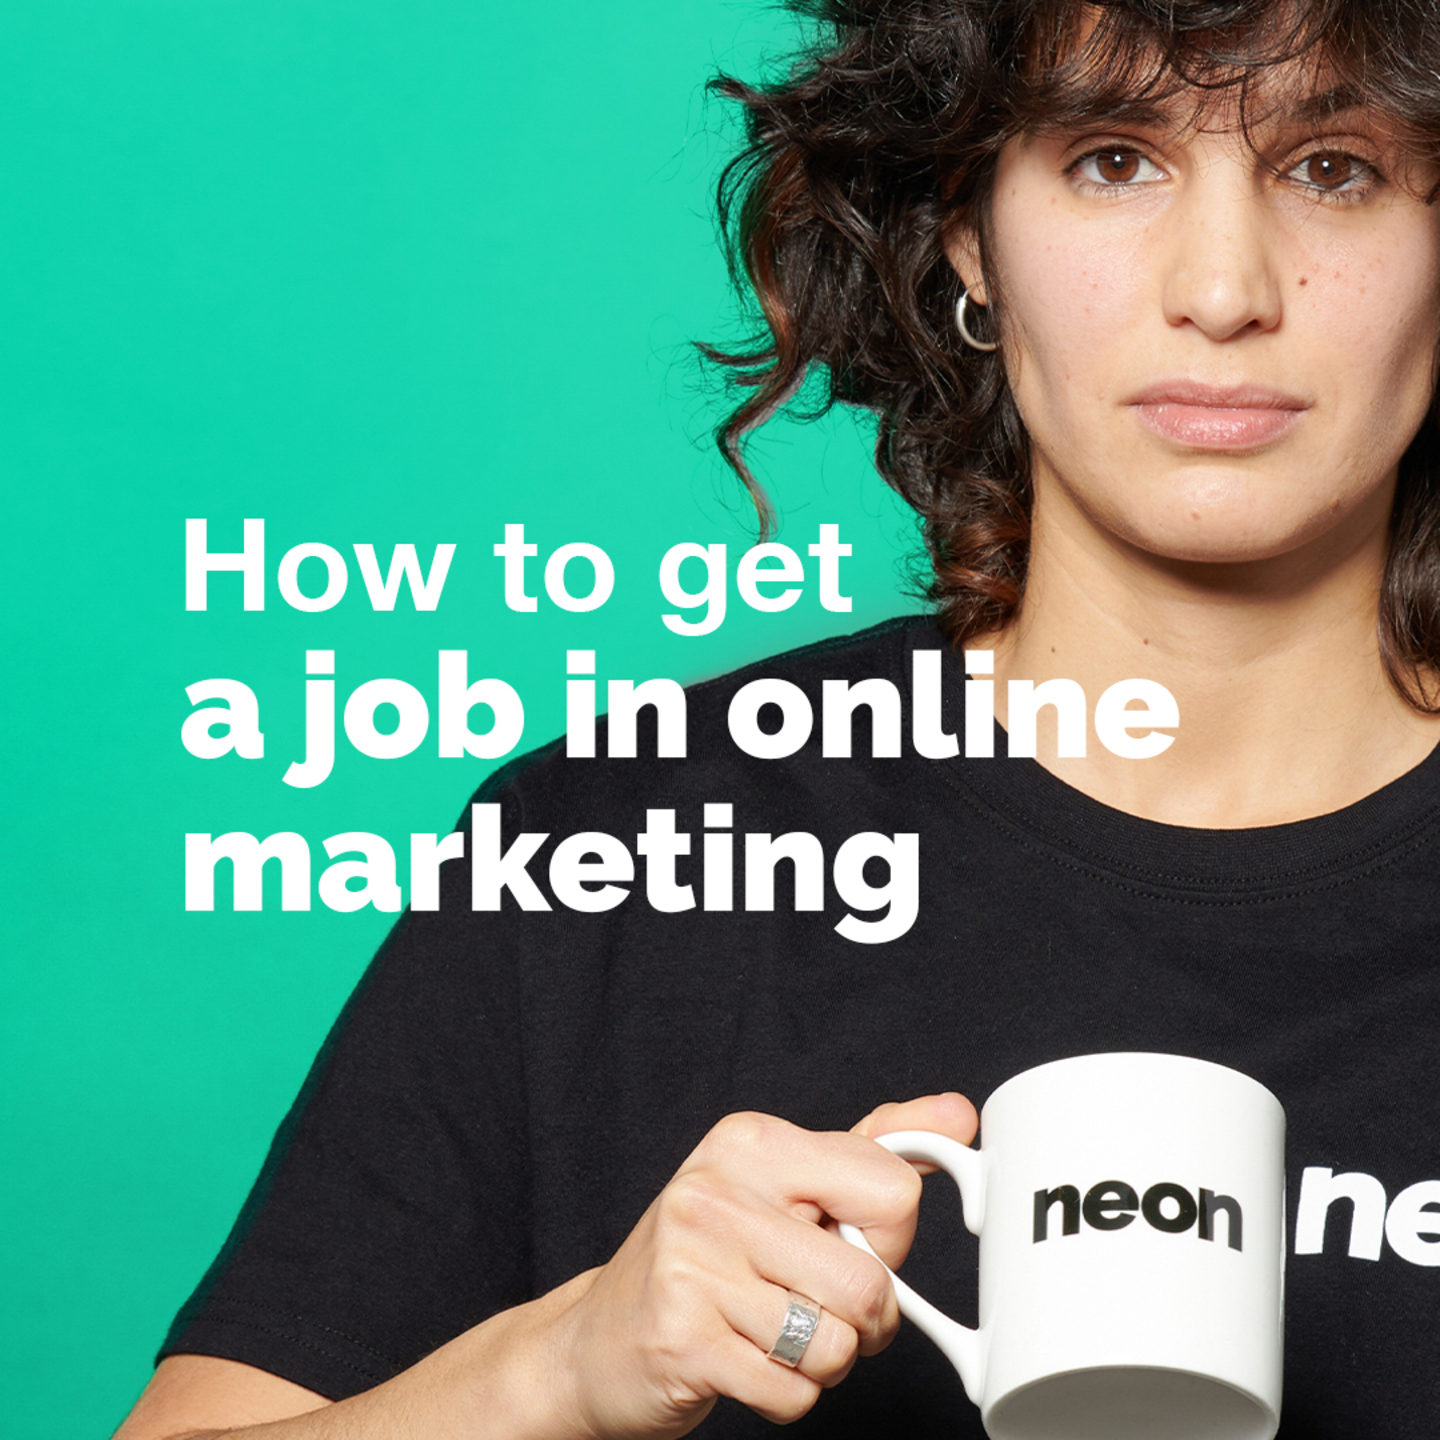 How to get a job in online marketing